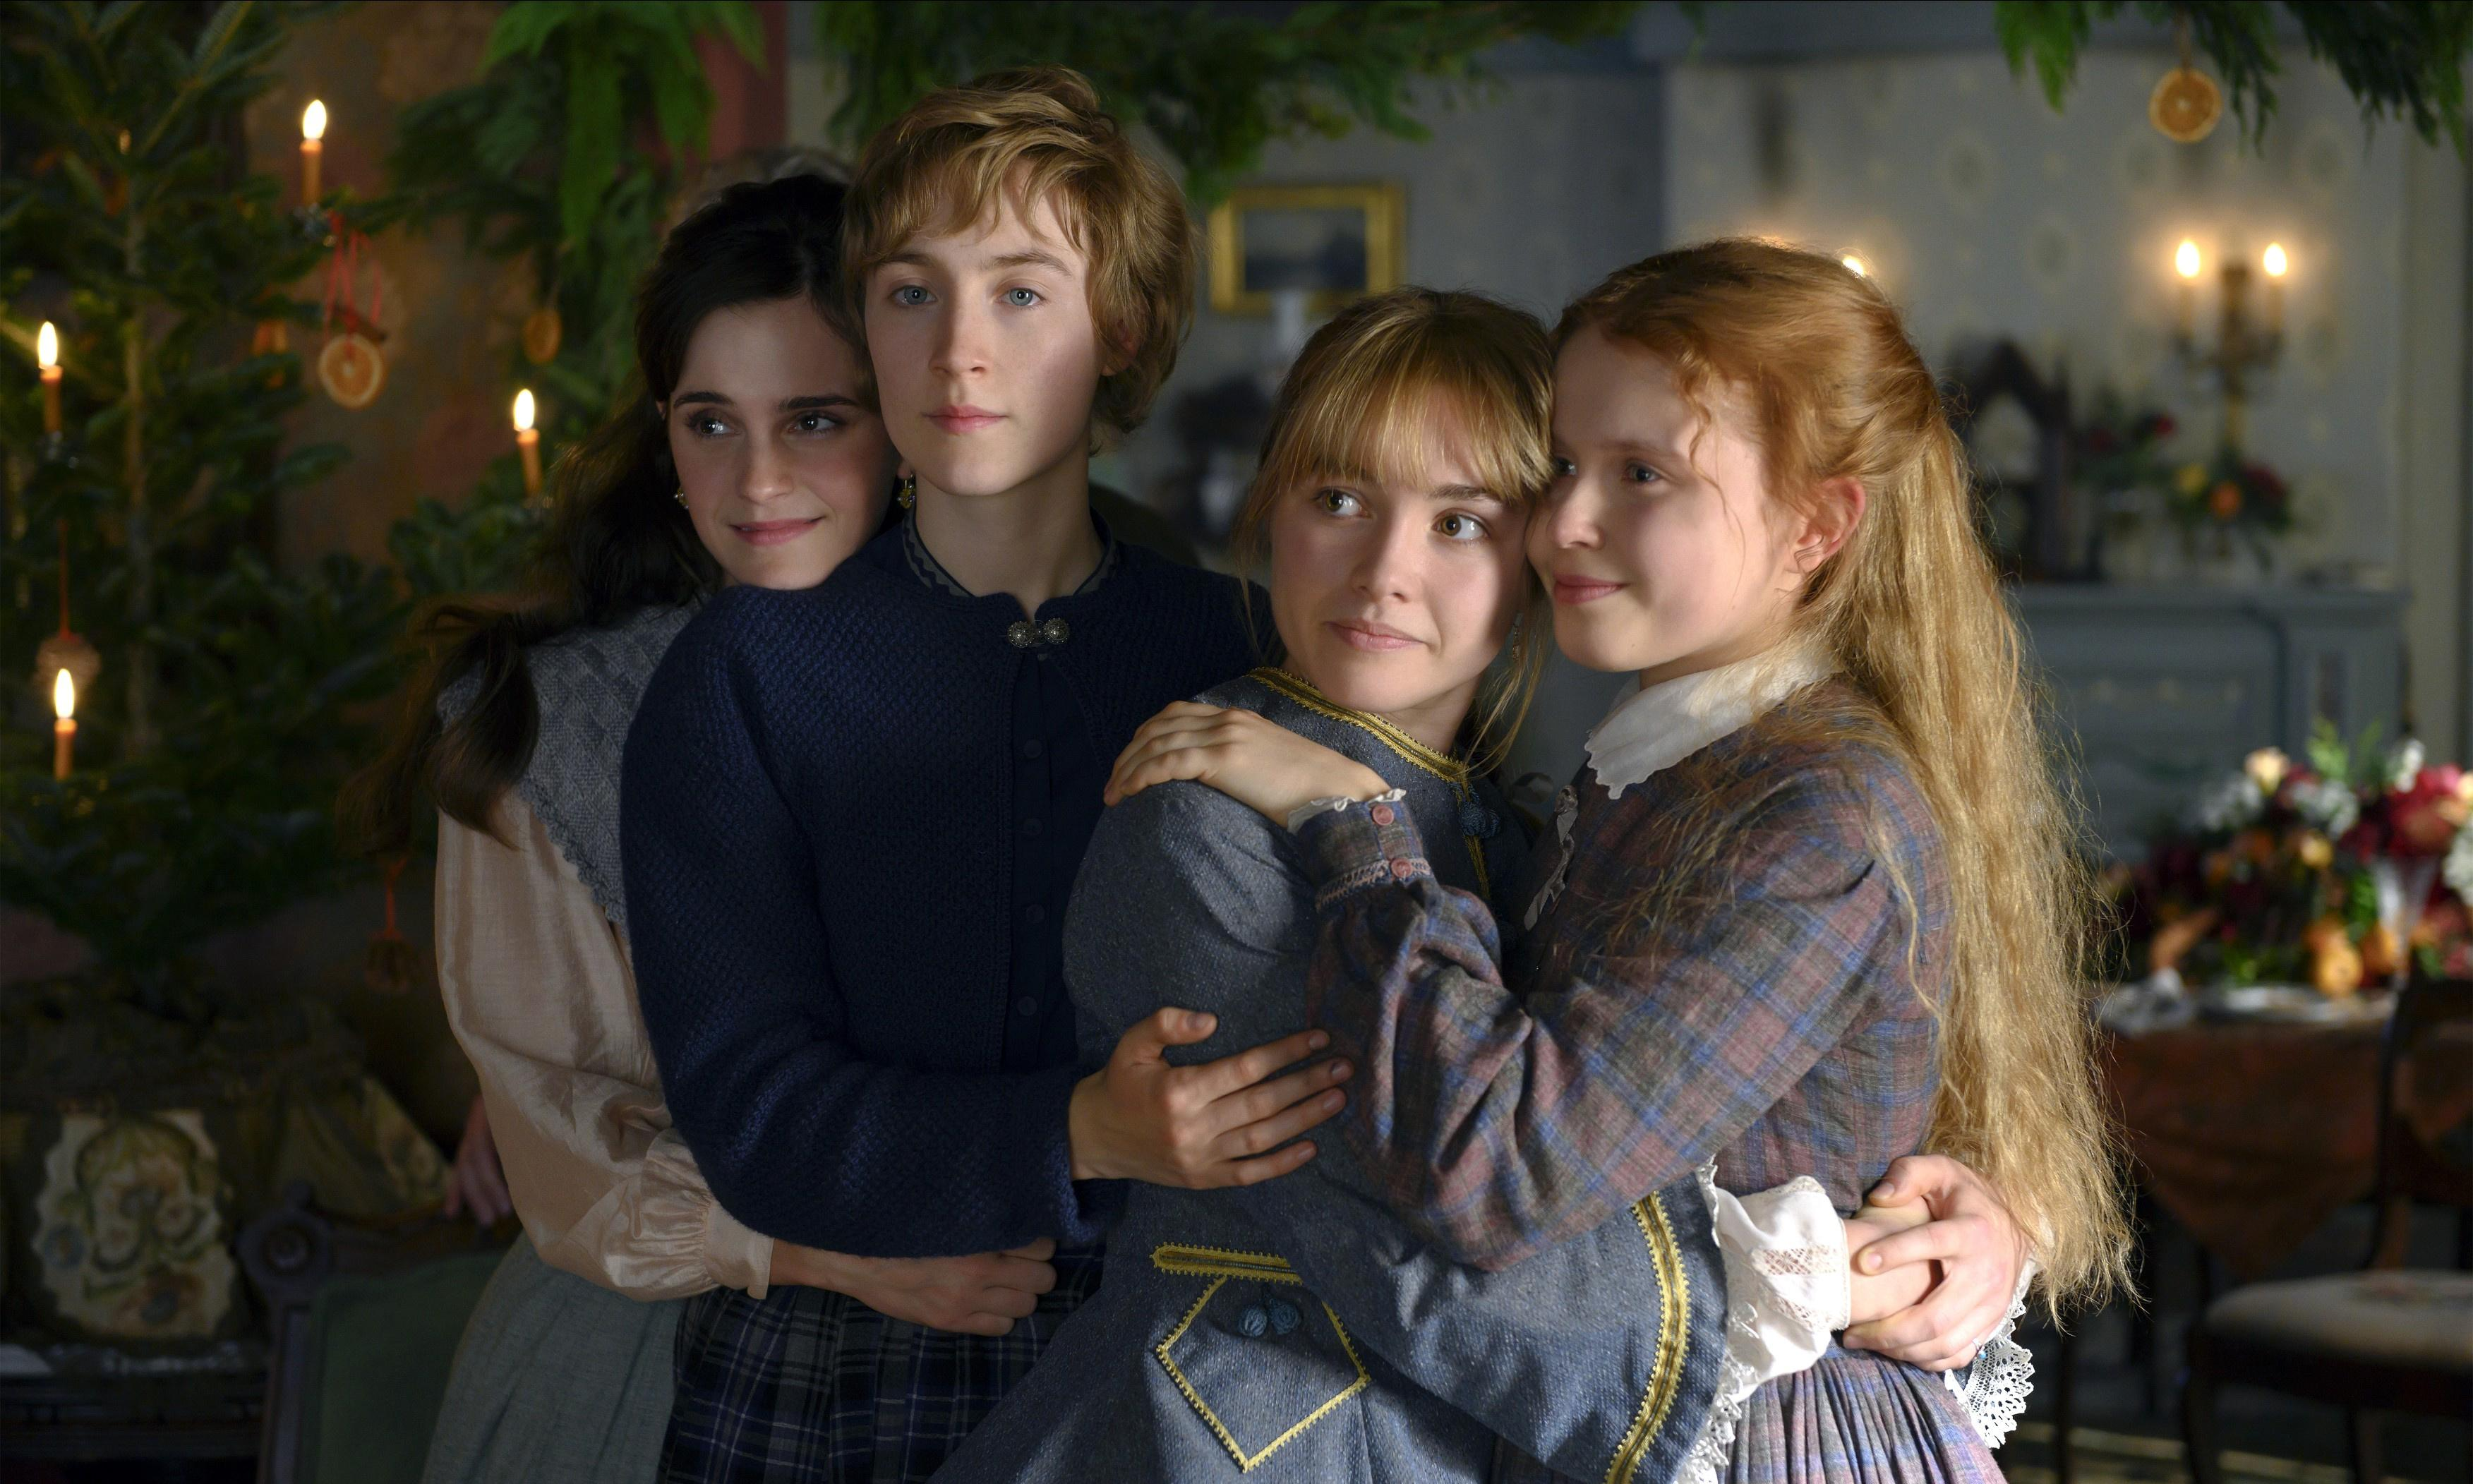 Sister act: how Little Women has come of age on the big screen